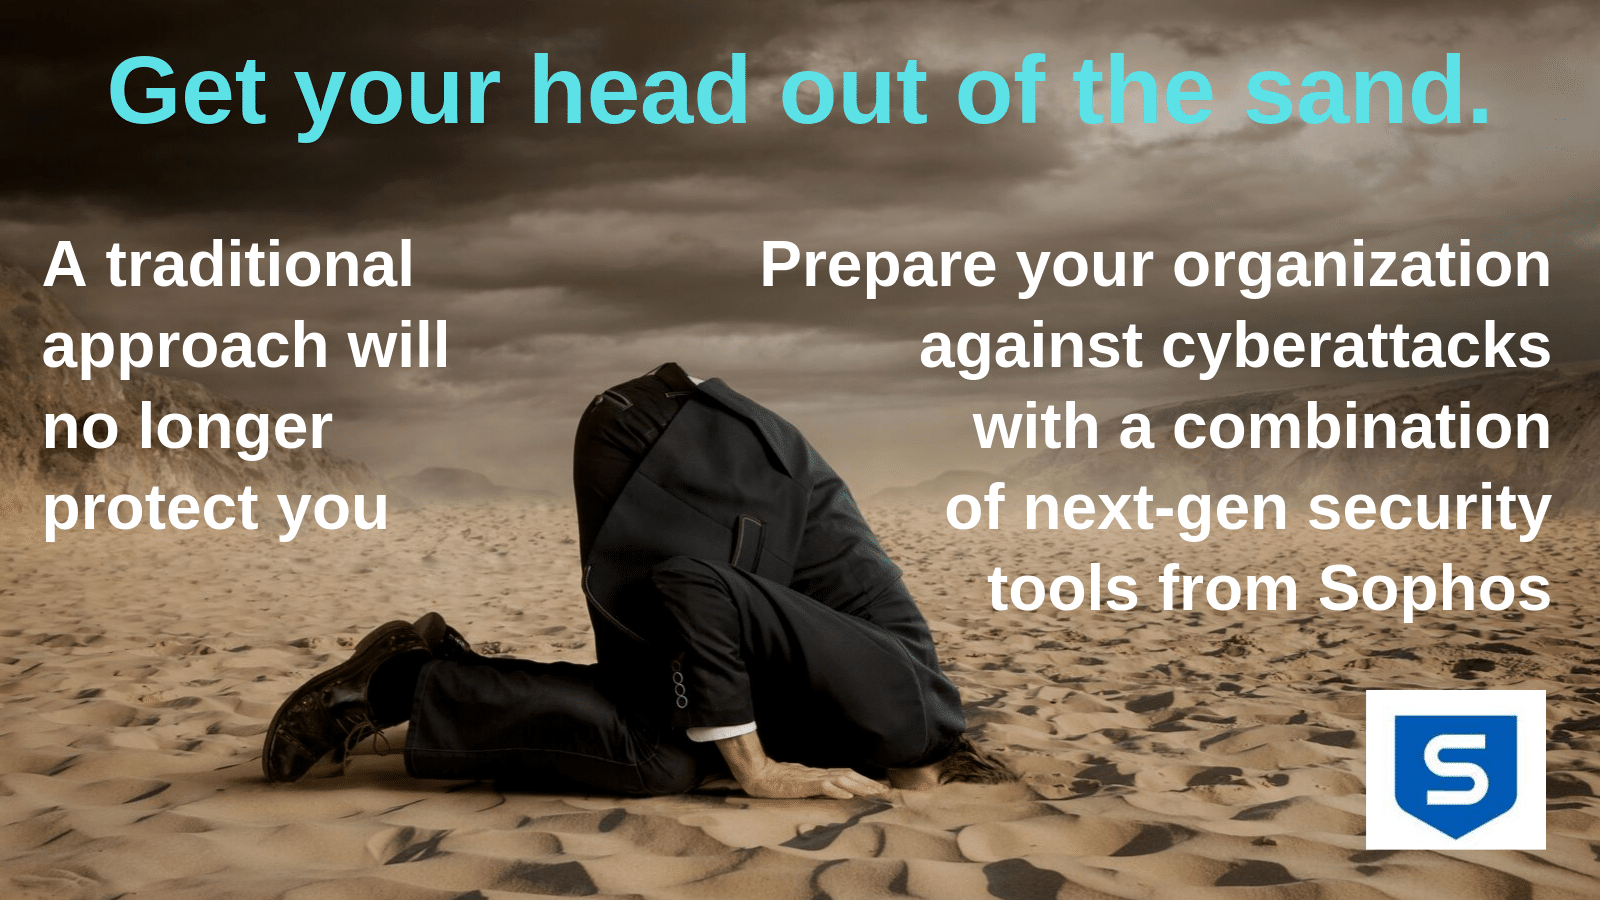 A traditional approach will no longer protect you from cyberattacks